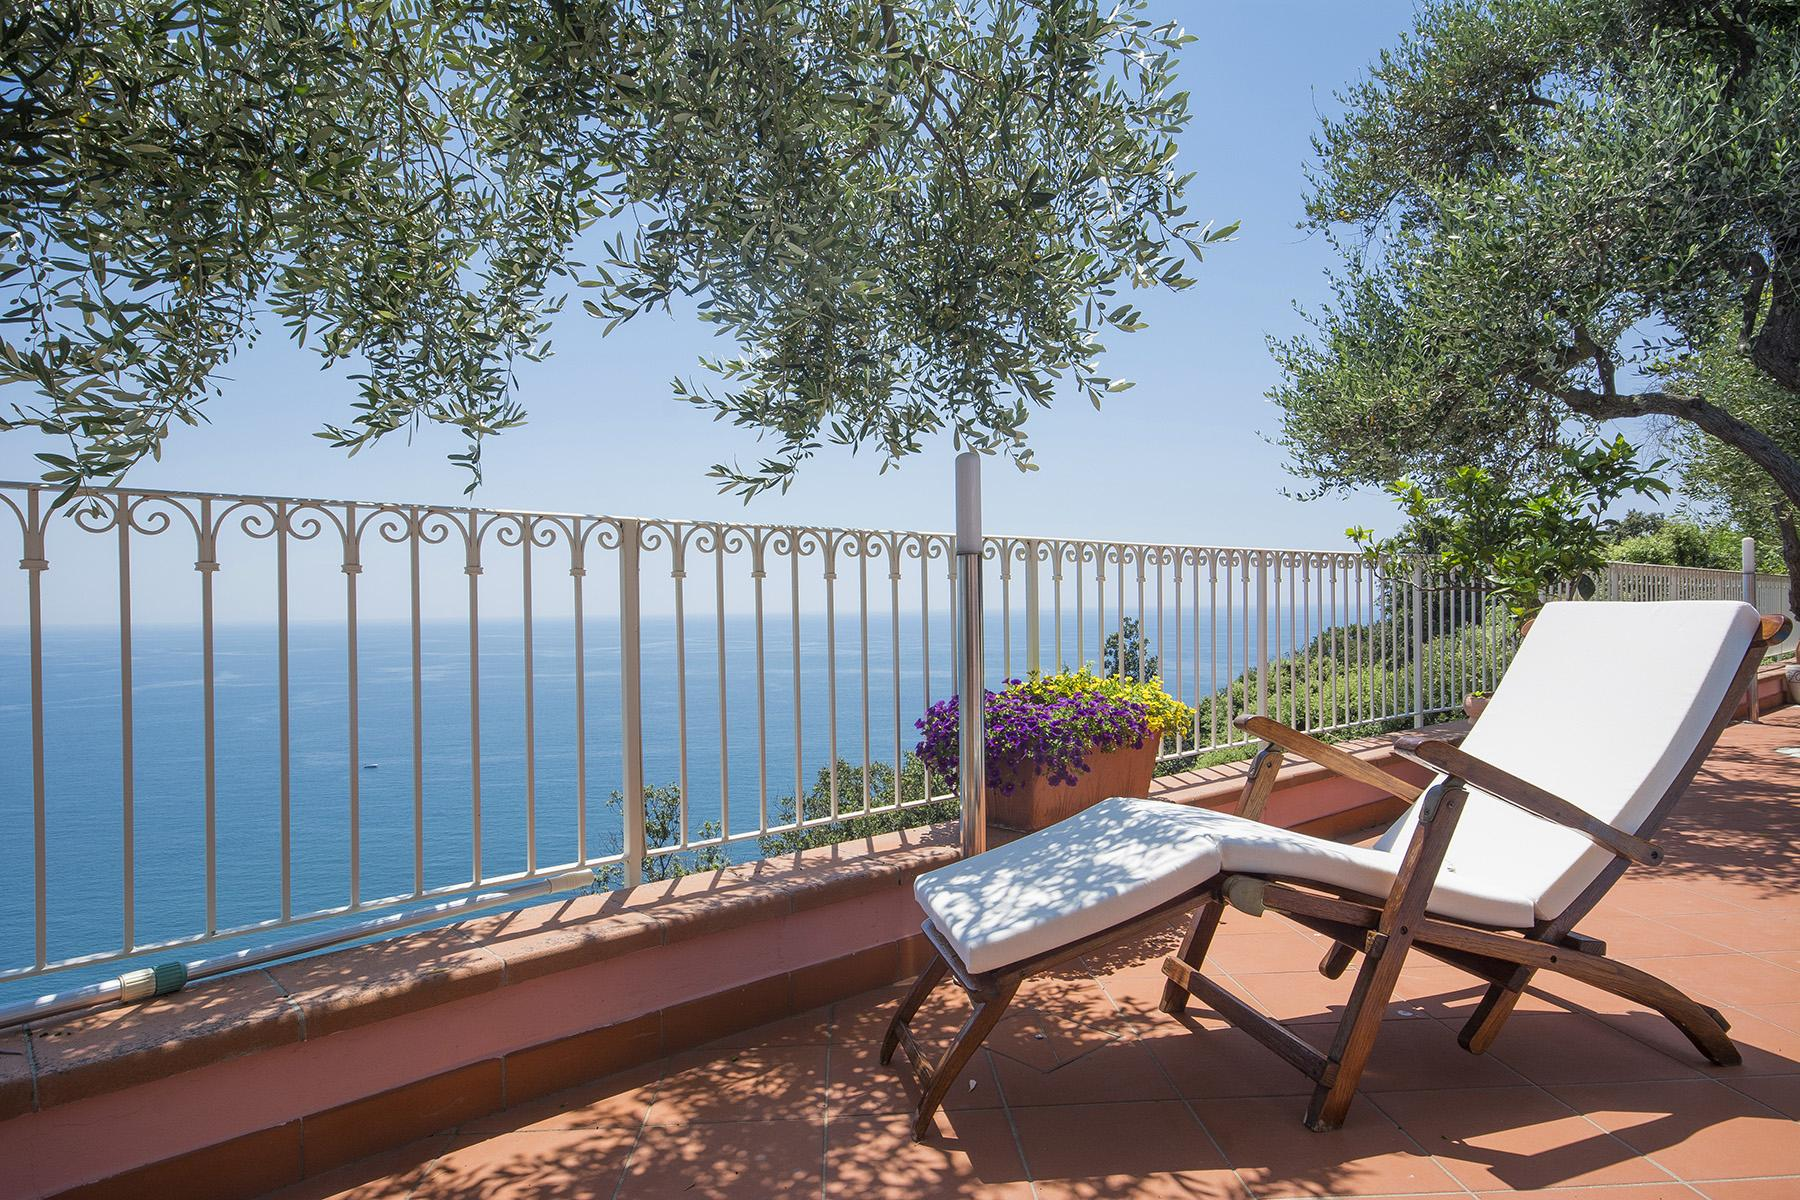 Charming luxury villa with swimming pool overlooking the Ligurian sea - 16